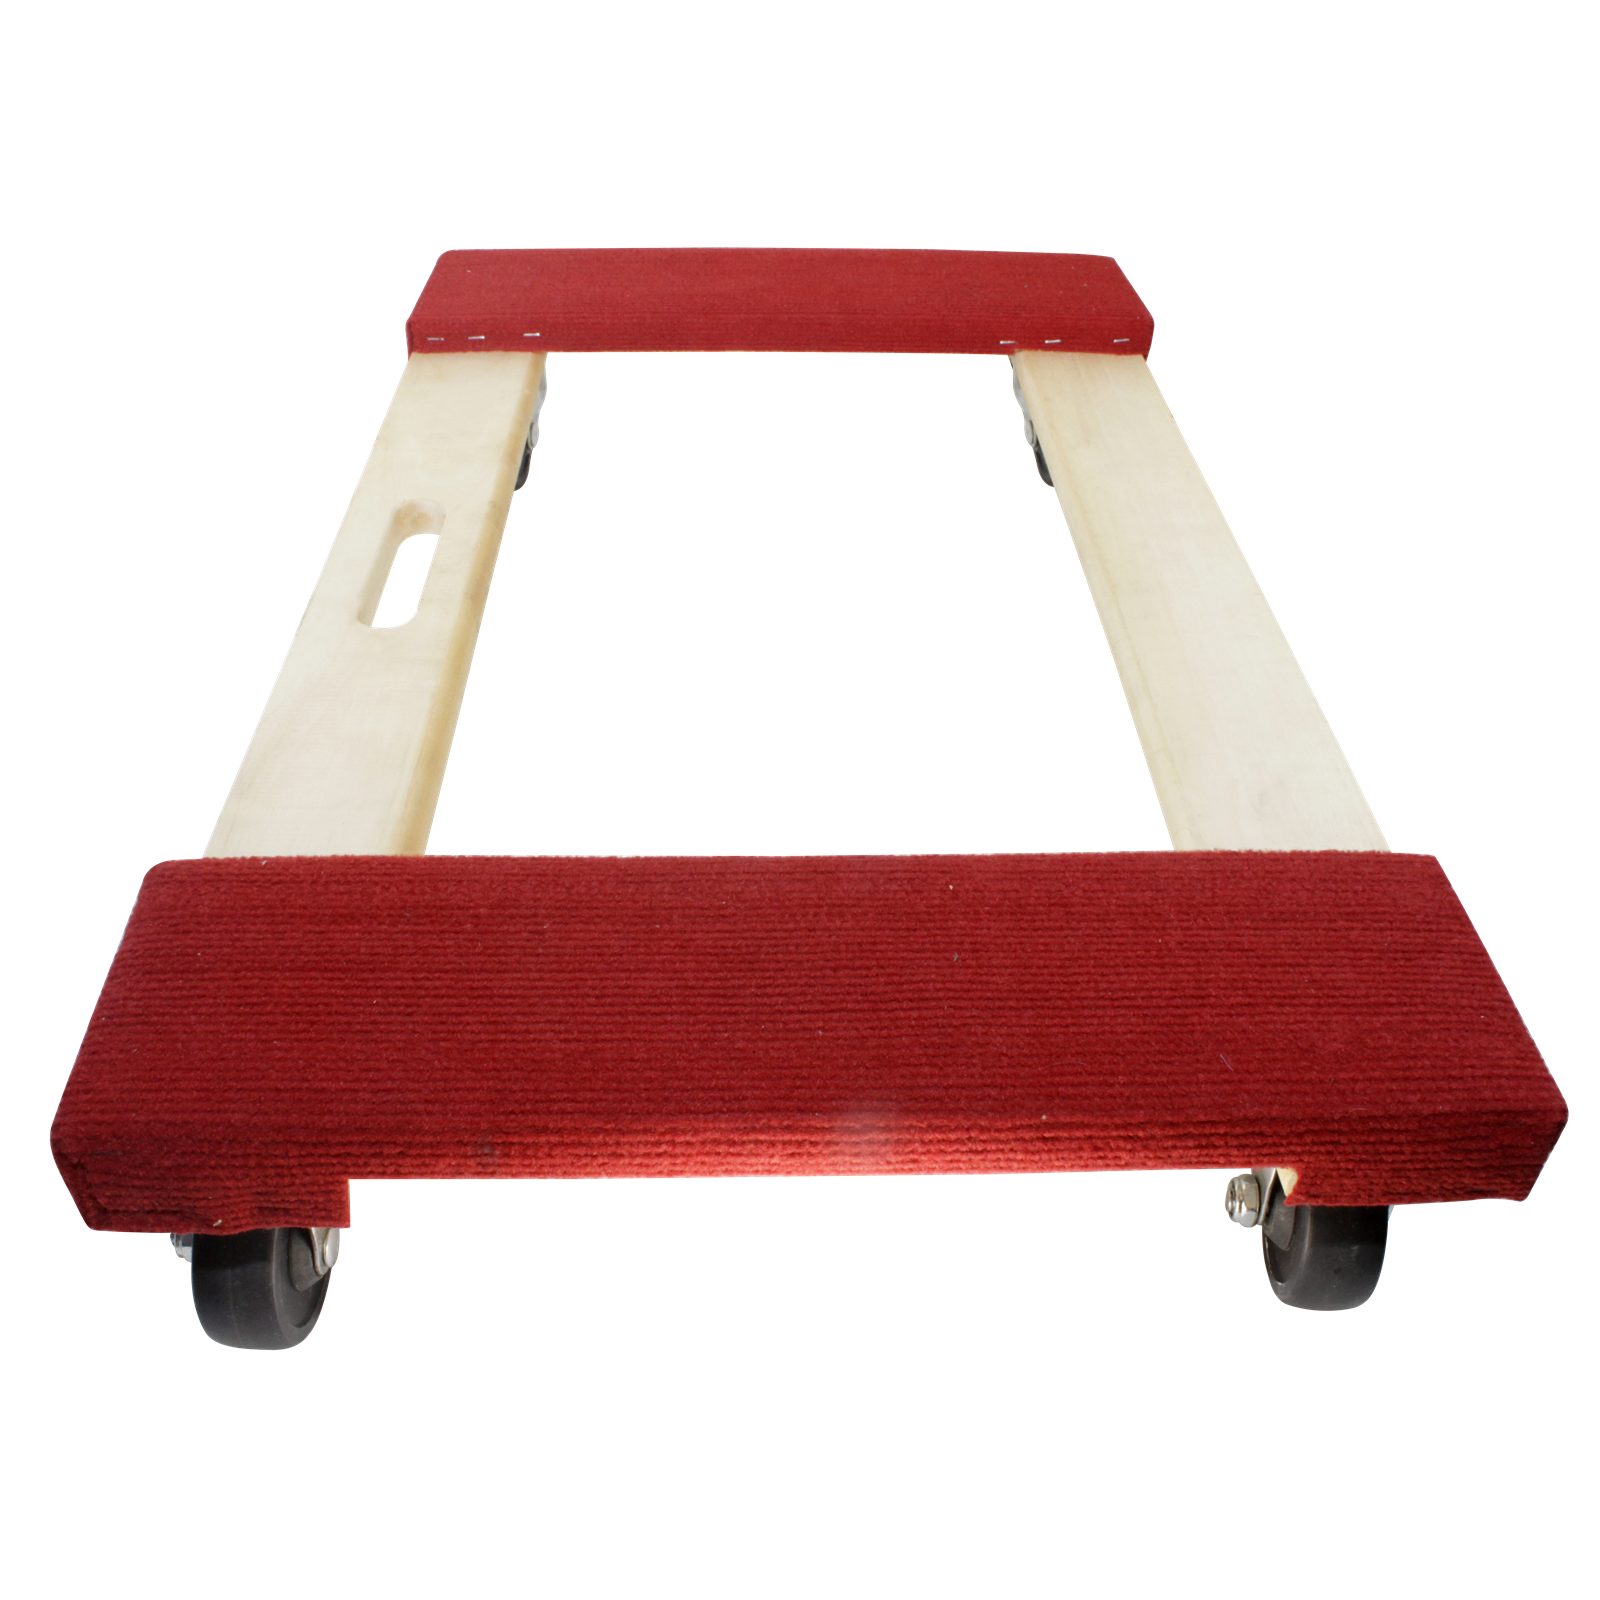 Move It 762 x 457 x 160mm 300kg Furniture Dolly